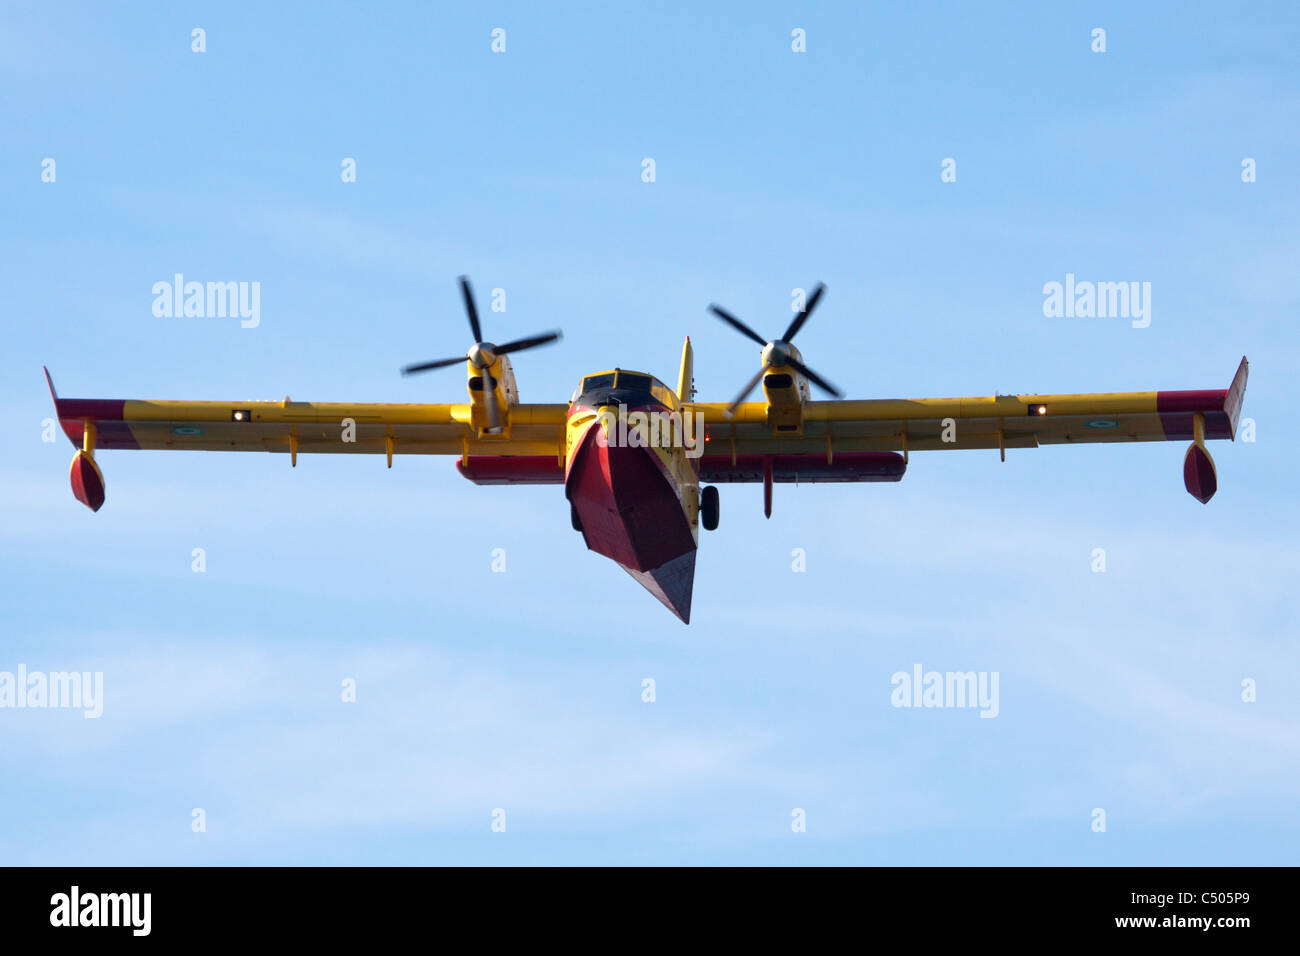 Greek Air force Canadair CL-415GR fire fighting plane photographed in Israel December 2010 - Stock Image